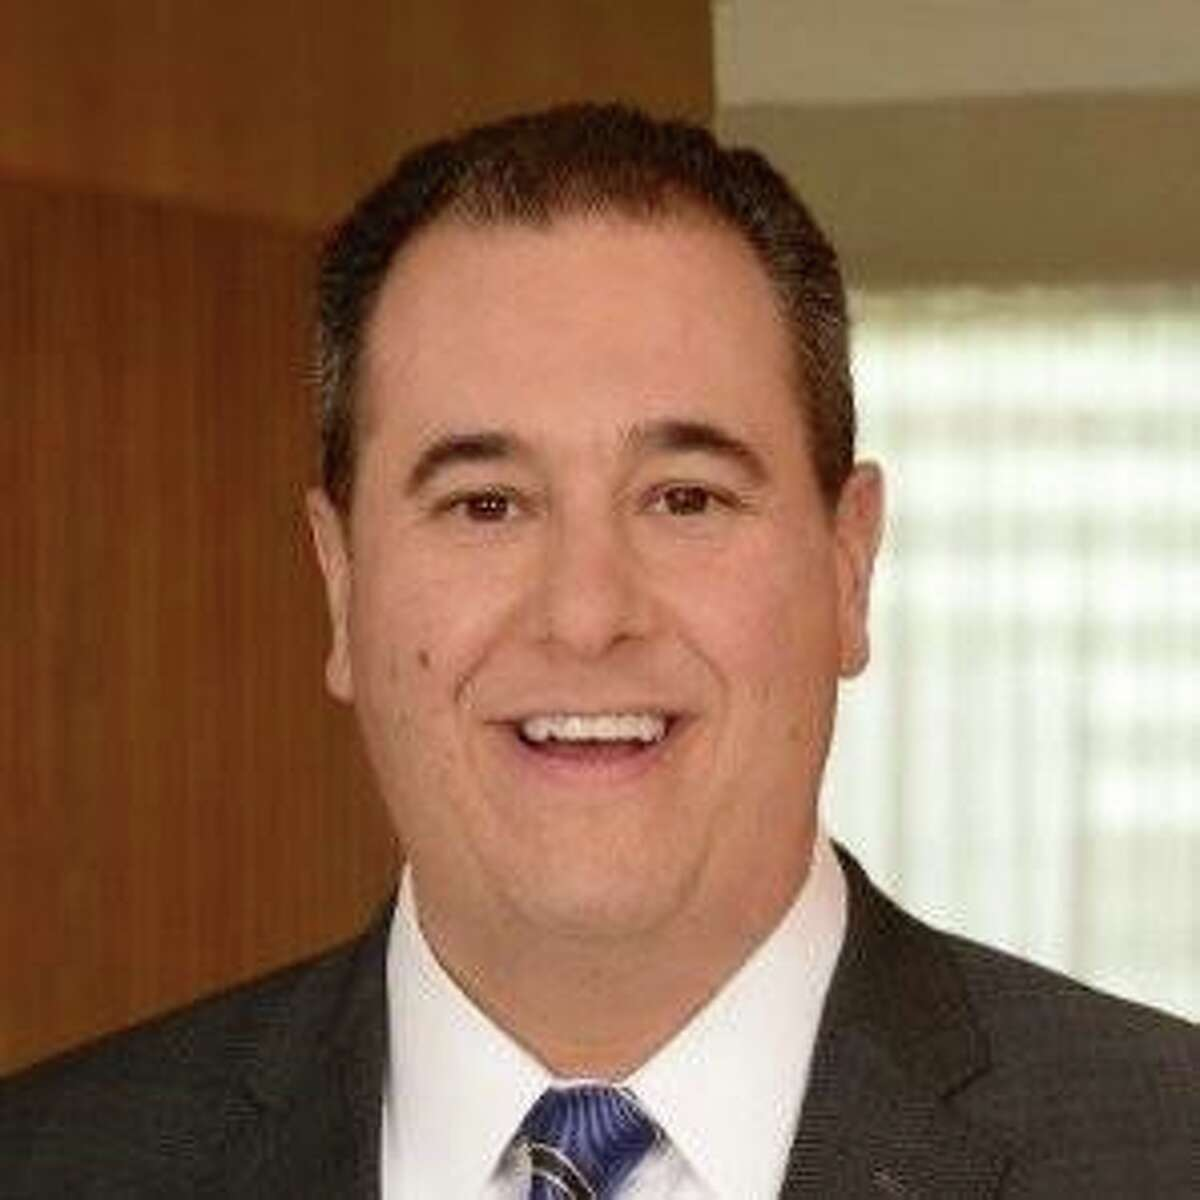 Tom Mantione is managing director at UBS Private Wealth Management, based in Stamford.